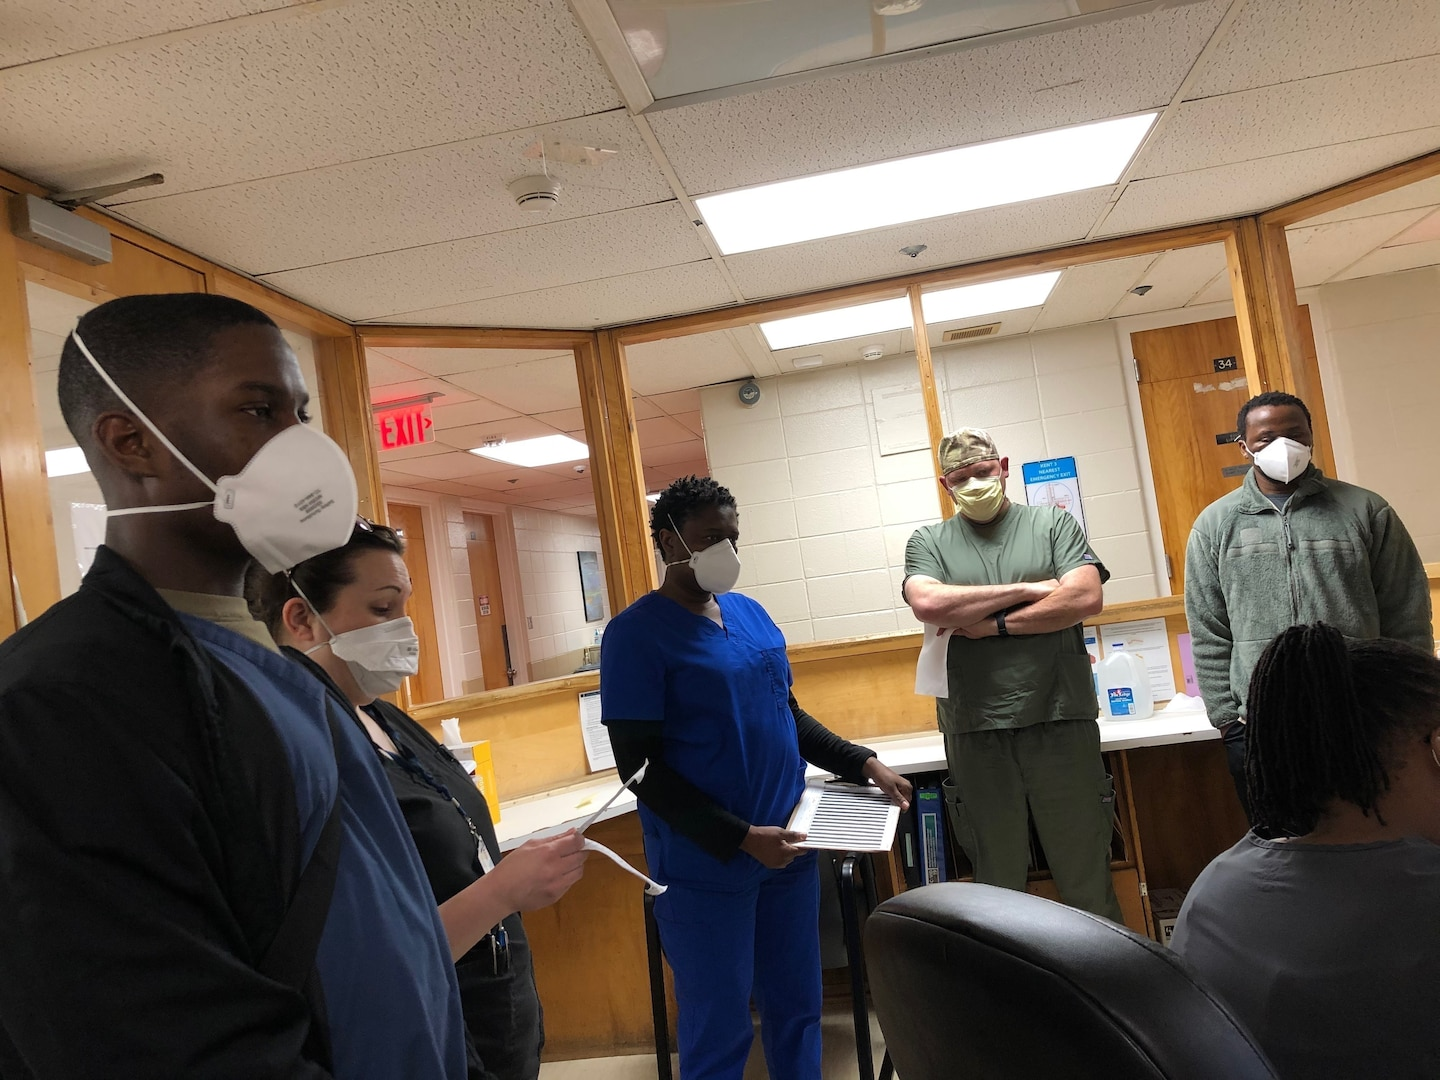 Soldiers and Airmen with the Delaware National Guard wear personal protective equipment at the Delaware Psychiatric Center in New Castle, Delaware, May 4, 2020.